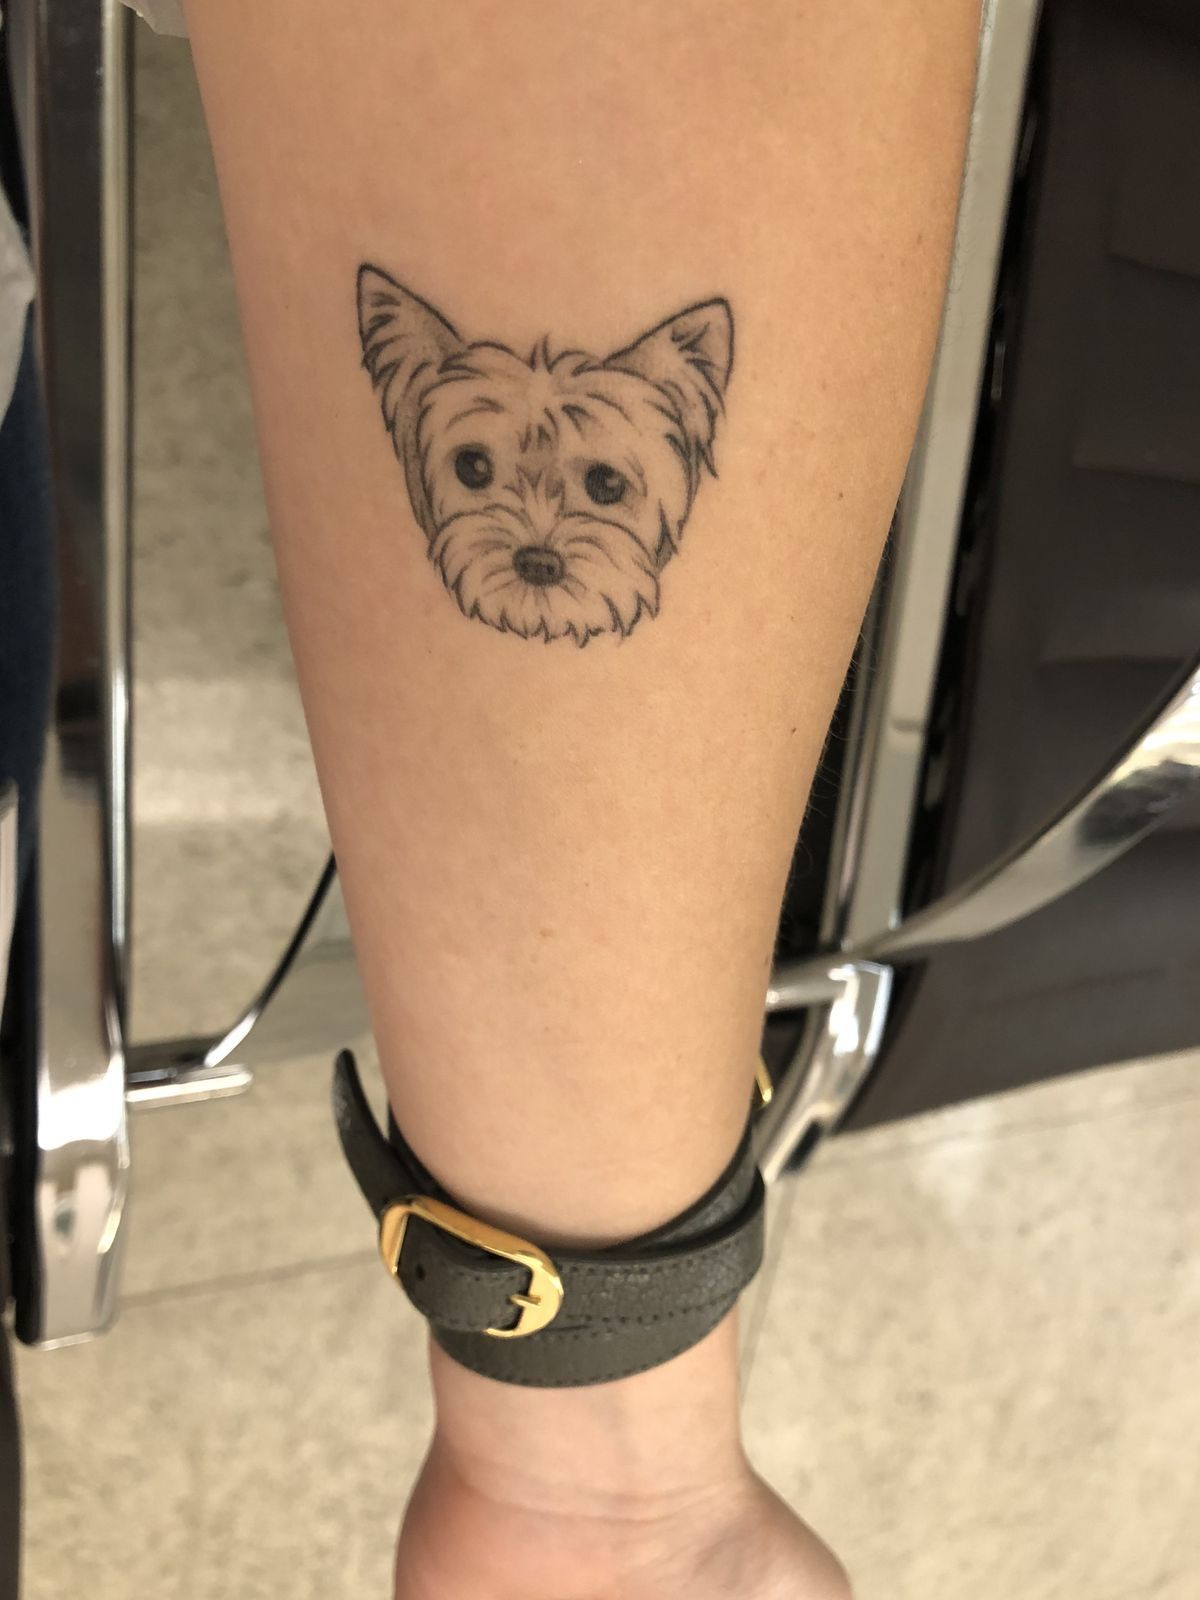 The 14 Best Yorkshire Terrier Tattoo Ideas Page 2 Of 3 Petpress In 2020 Small Animal Tattoos Tattoos Animal Tattoo